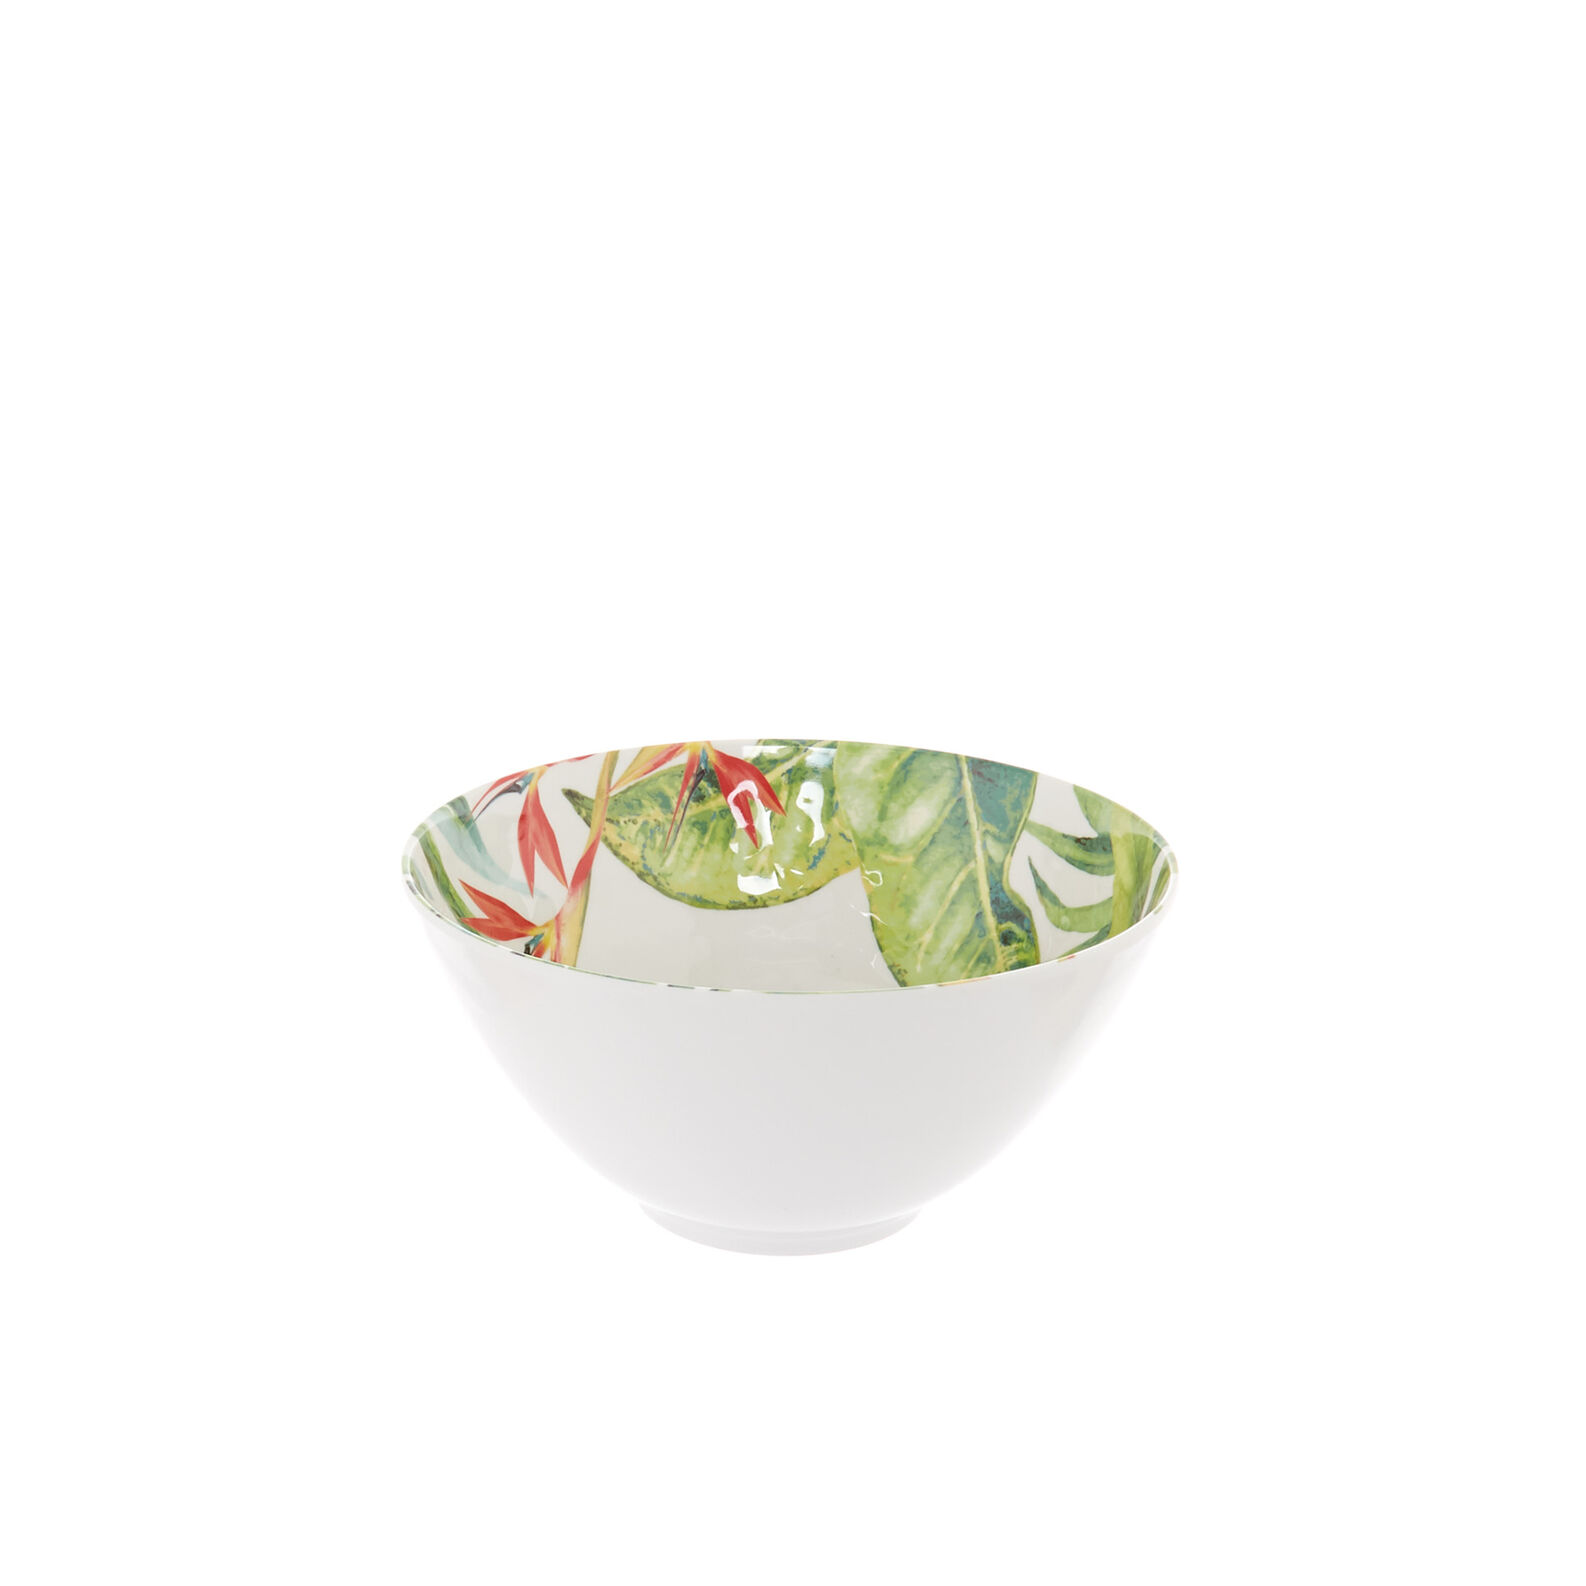 Small melamine bowl with tropical leaves motif